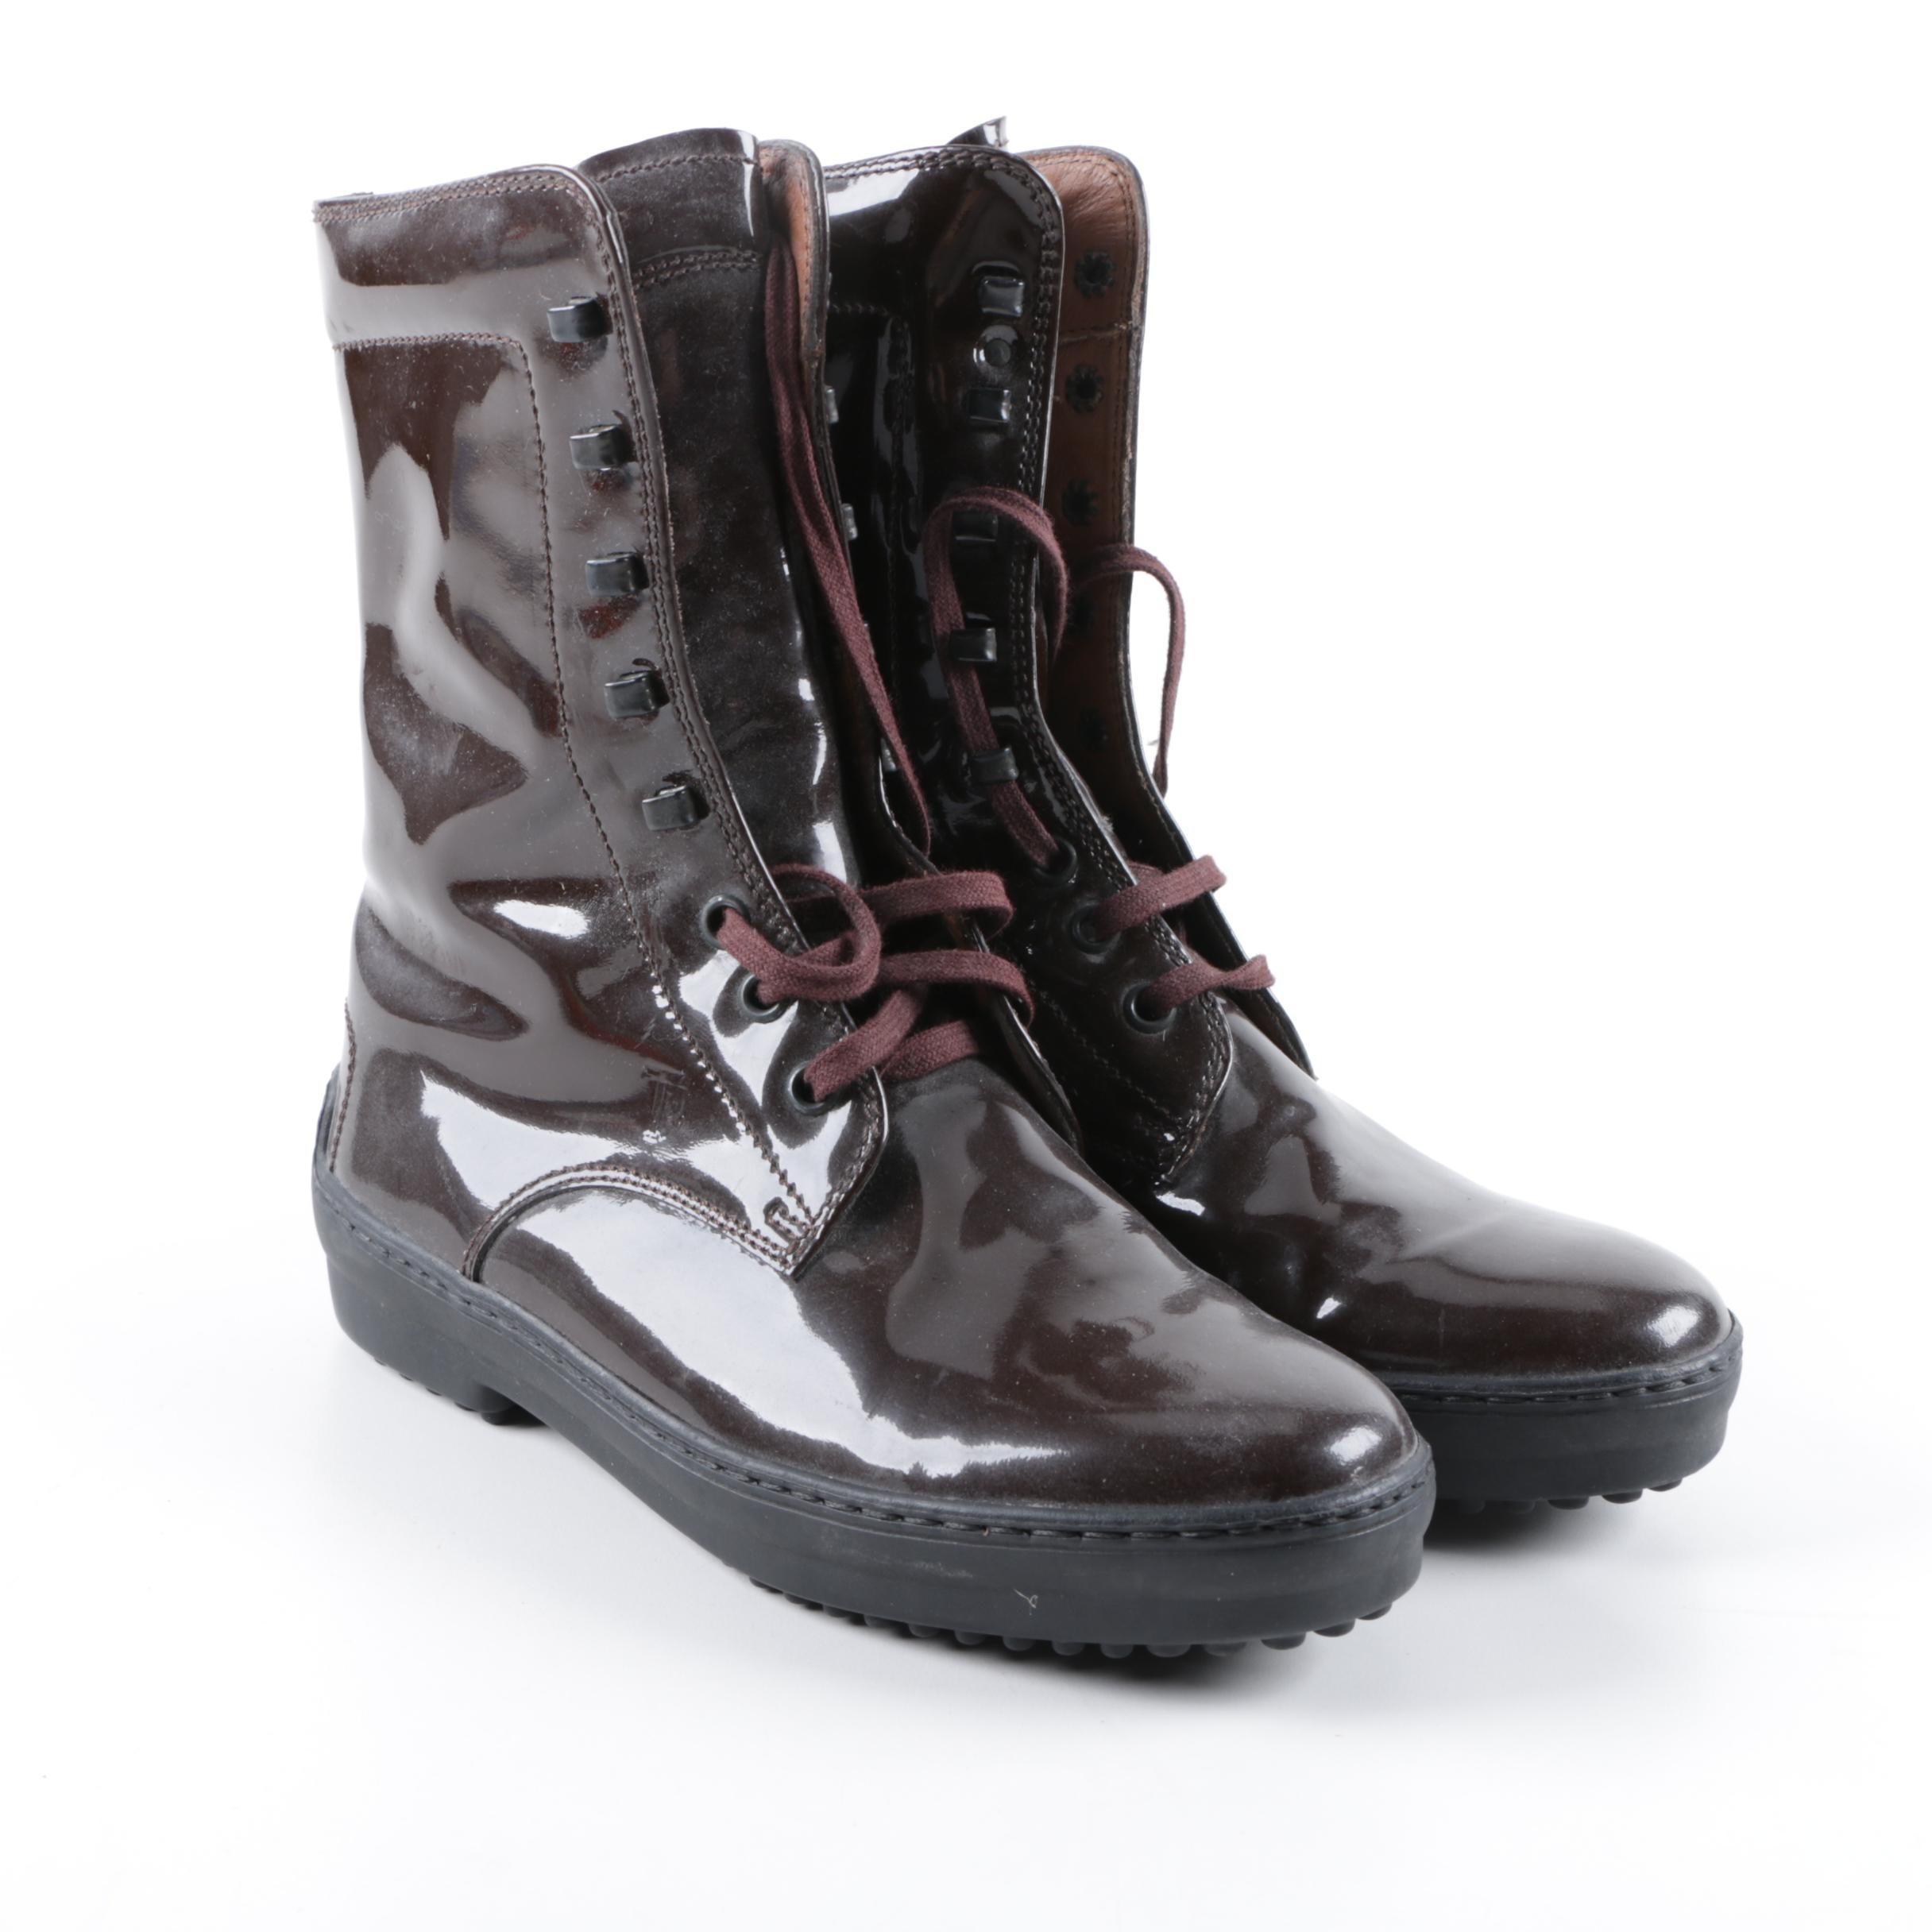 Women's Tod's Brown Patent Leather Lace-Up Boots